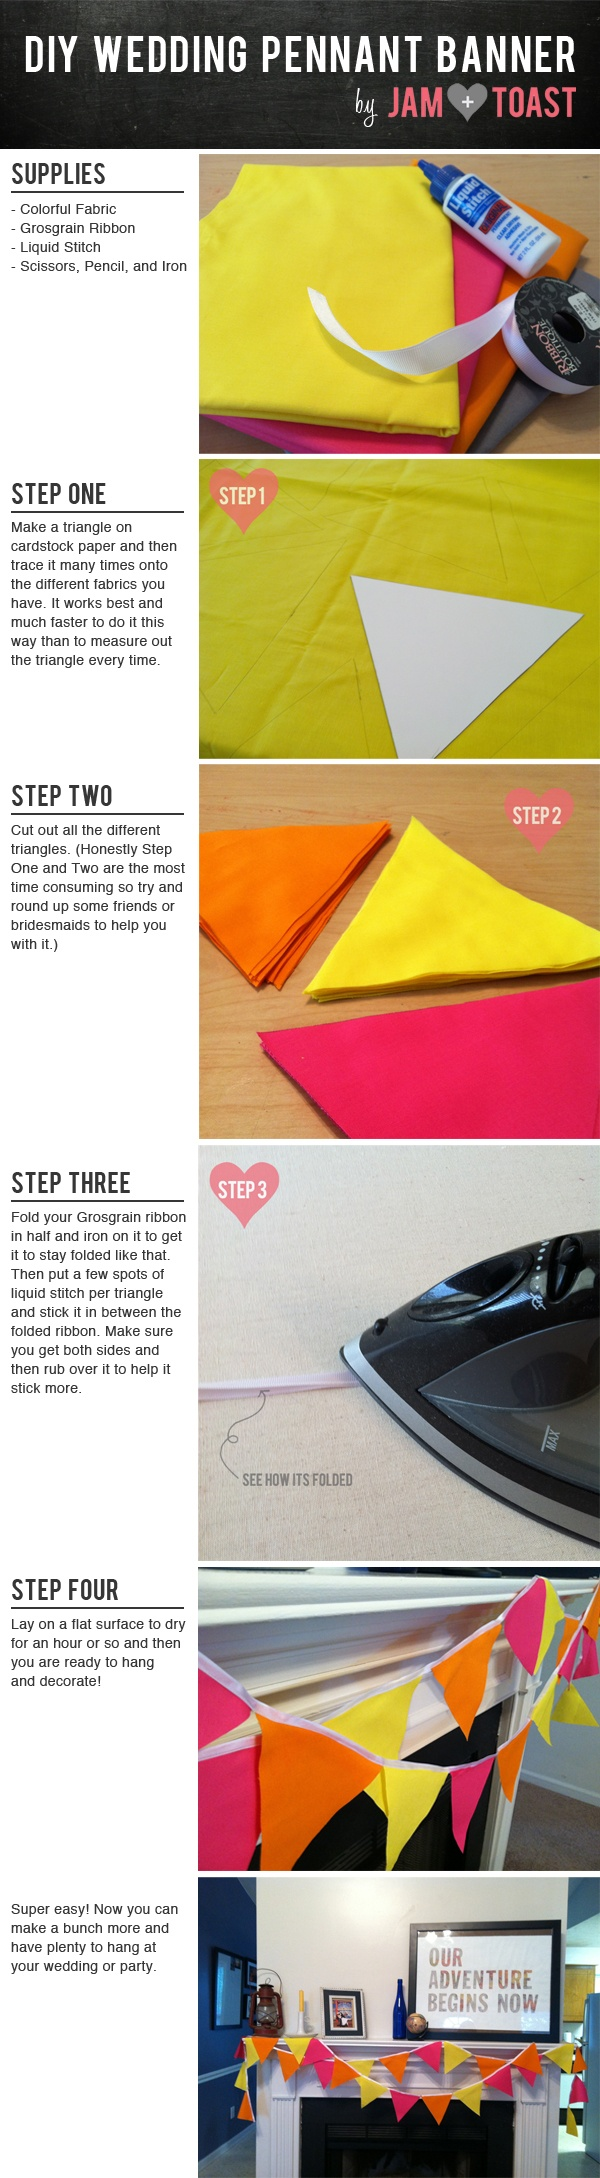 Easy DIY No-Sew Wedding Pennant Banner over colorful tablecloth? Plastic?